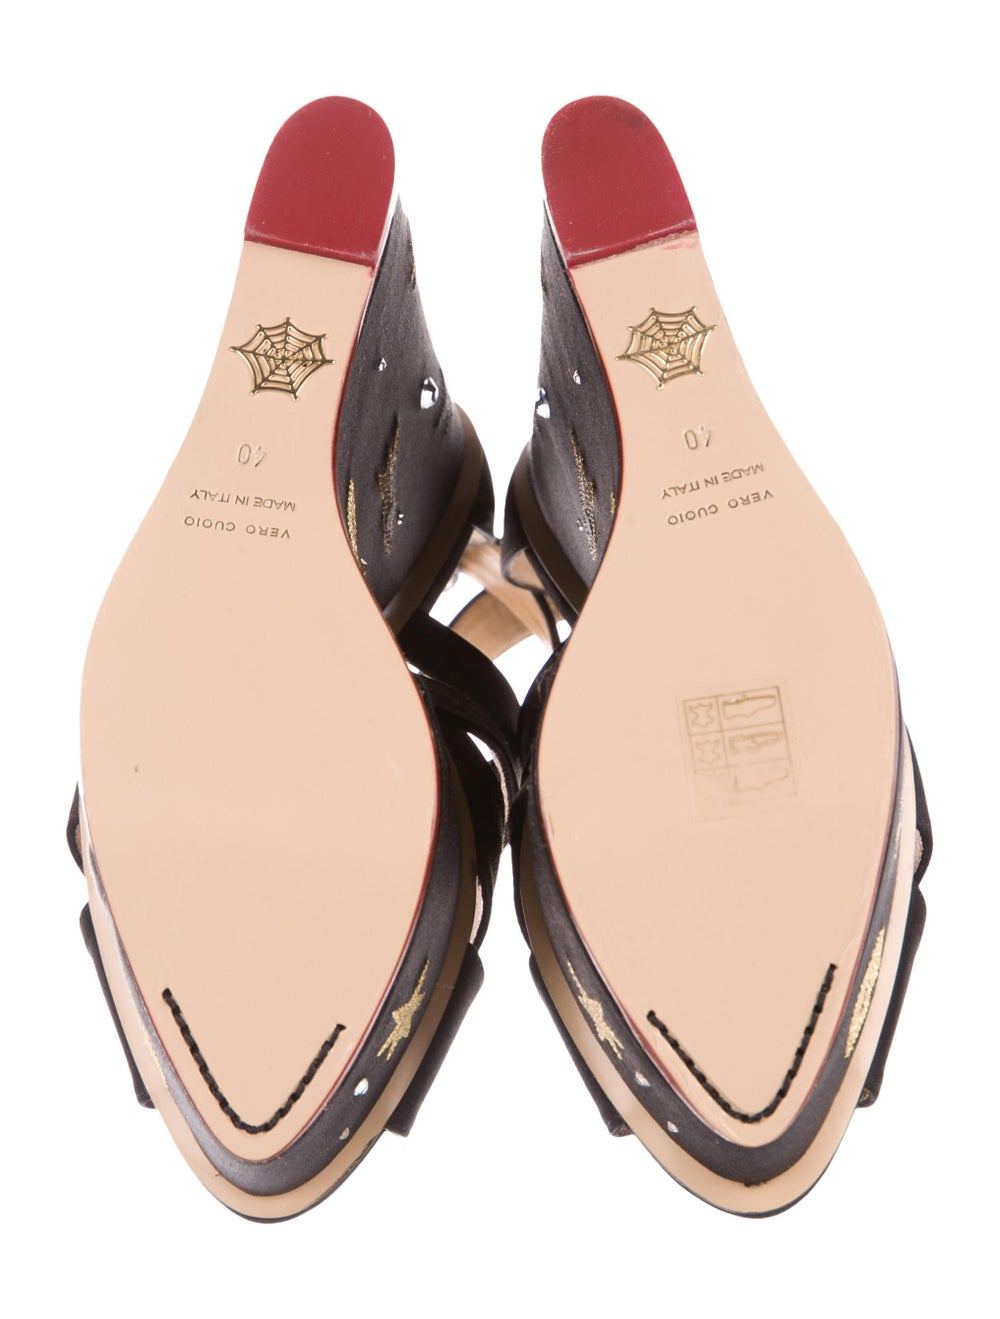 Charlotte Olympia Space Age Satin Wedges Black - image 5